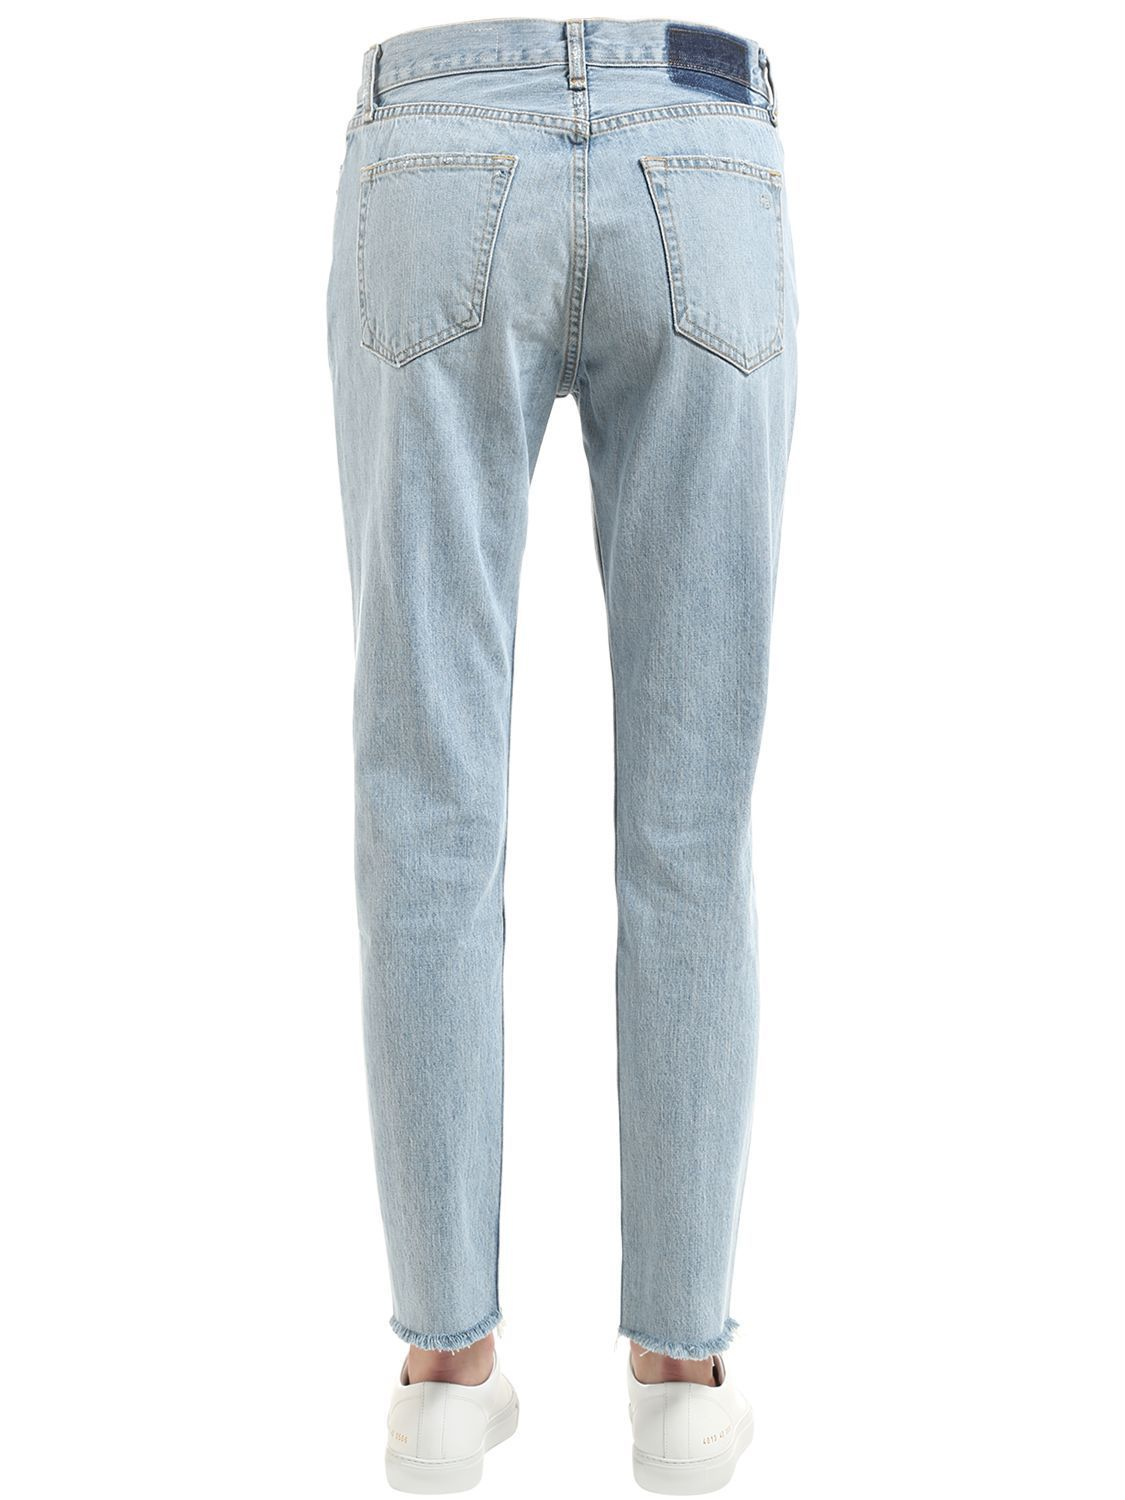 ラグアンドボーン MARILYN DISTRESSED COTTON DENIM JEANS